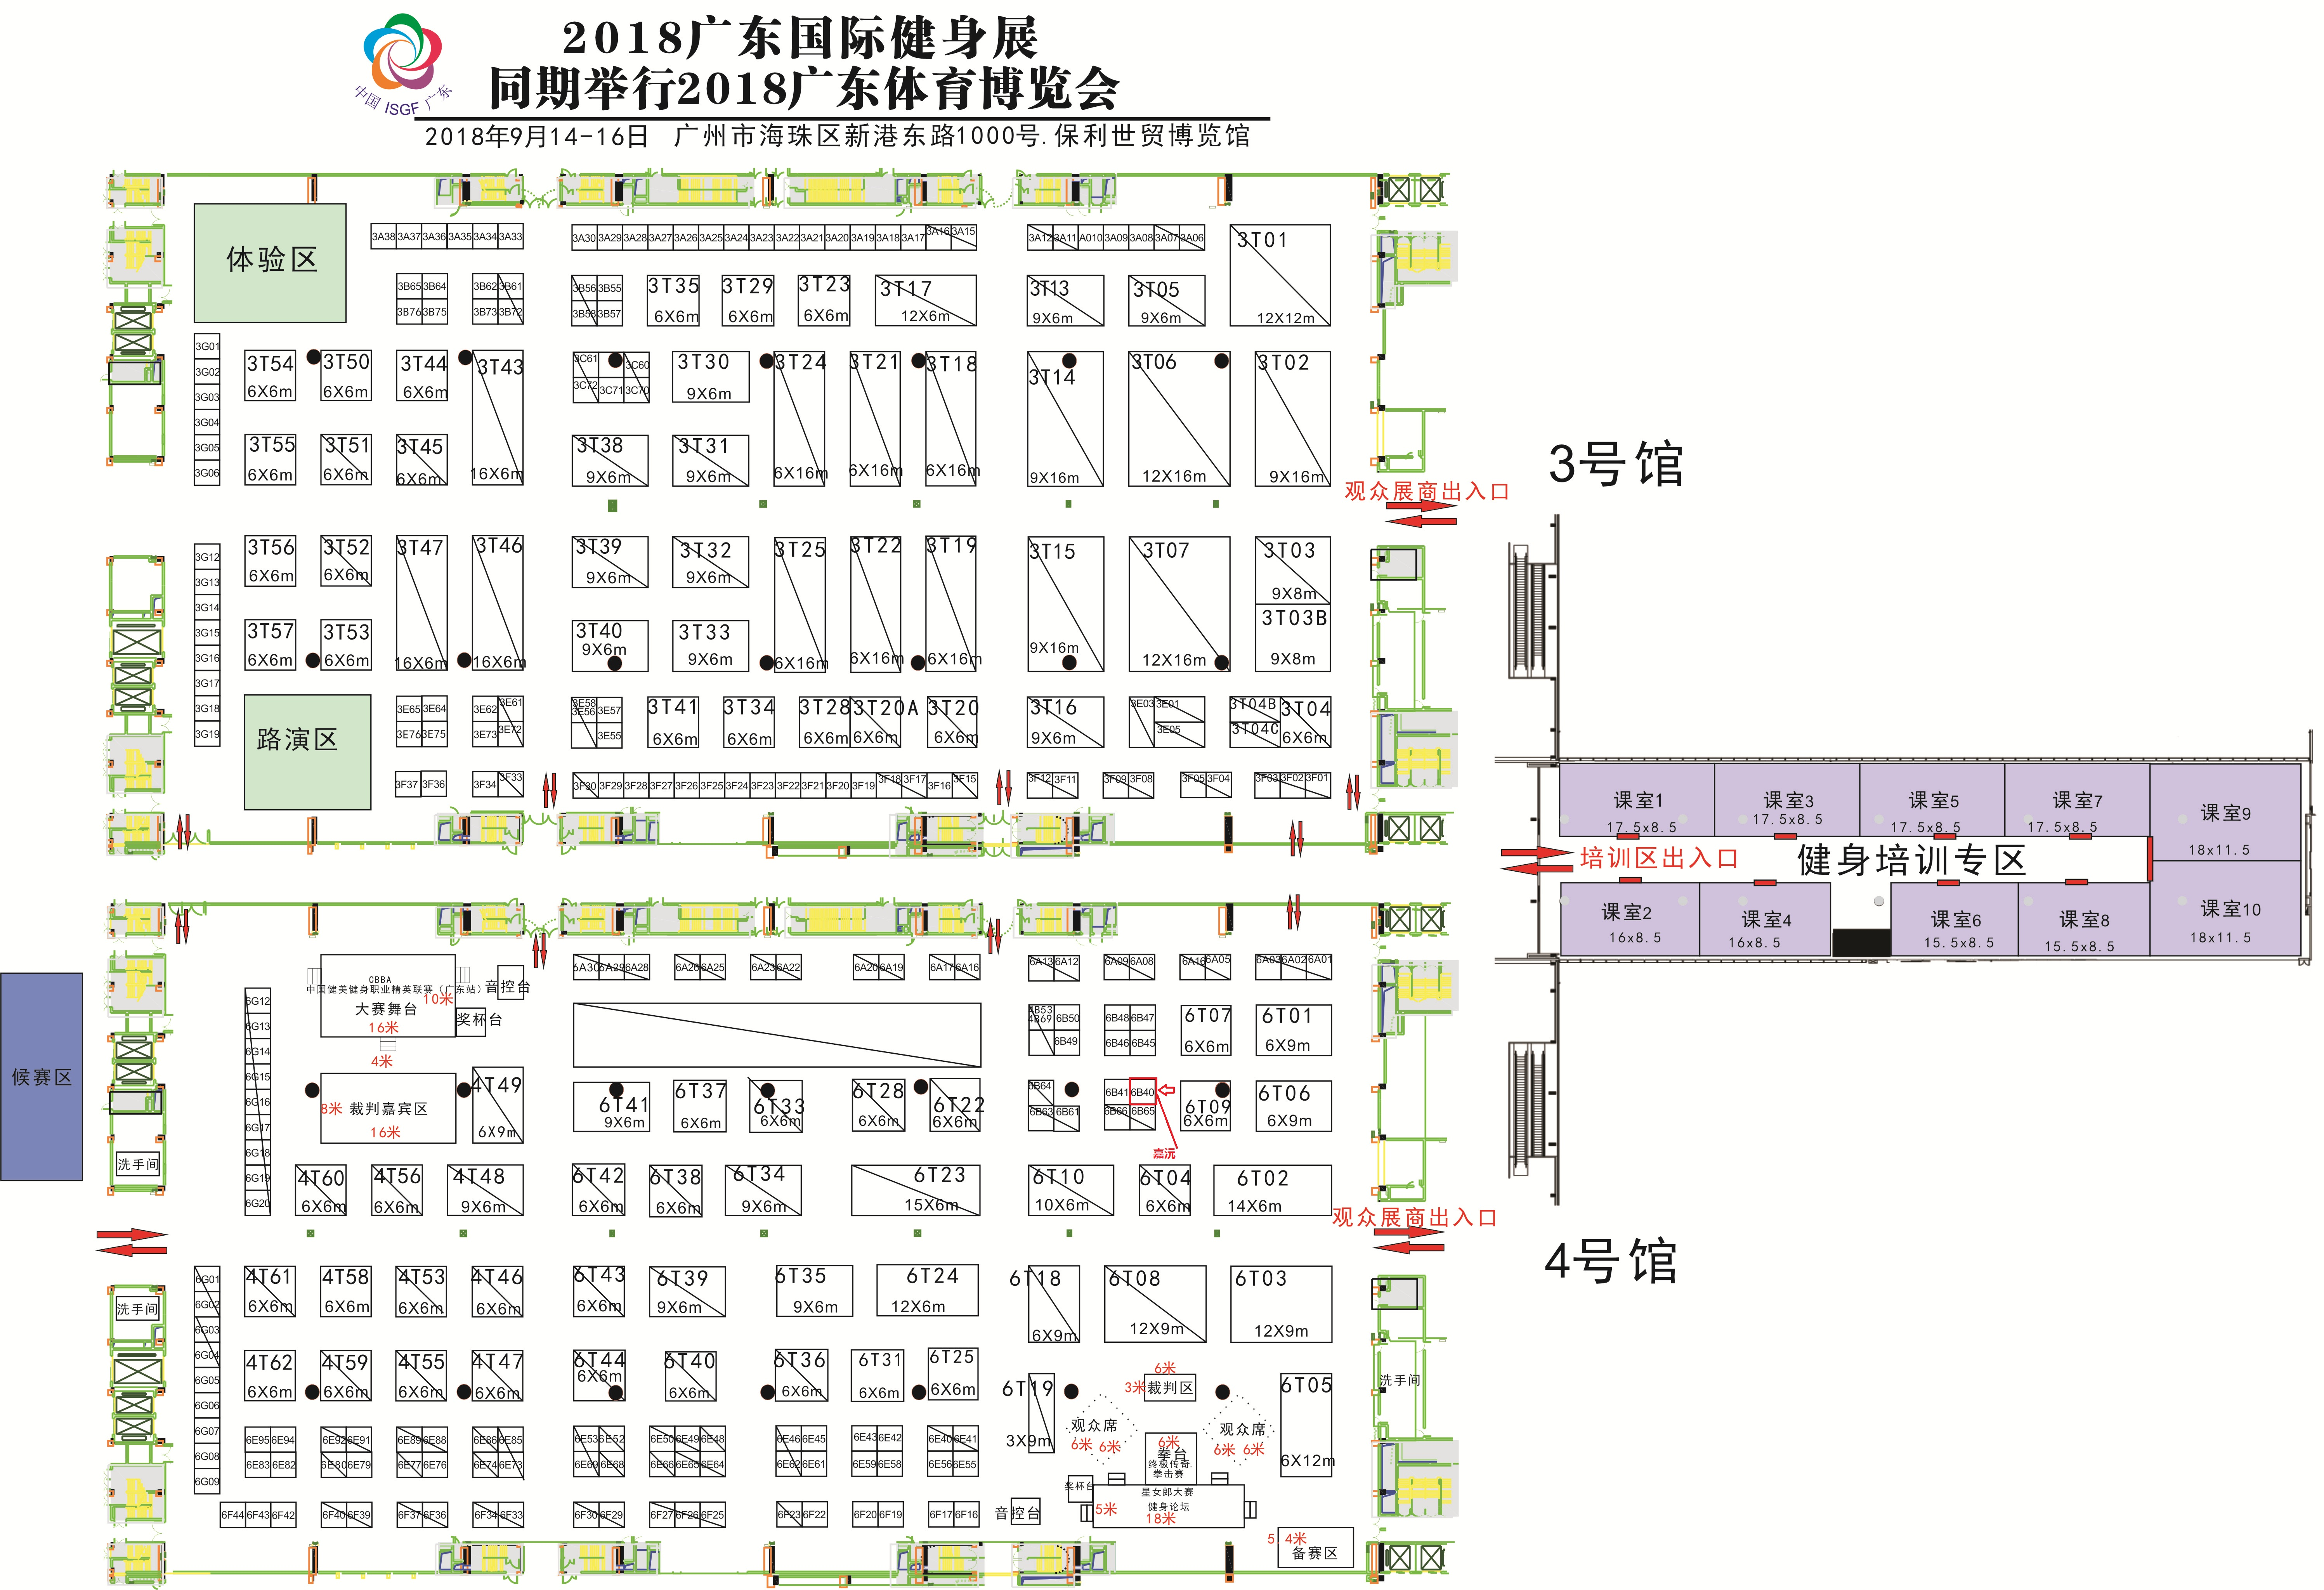 2018 Guangdong Sport Show【Booth map】